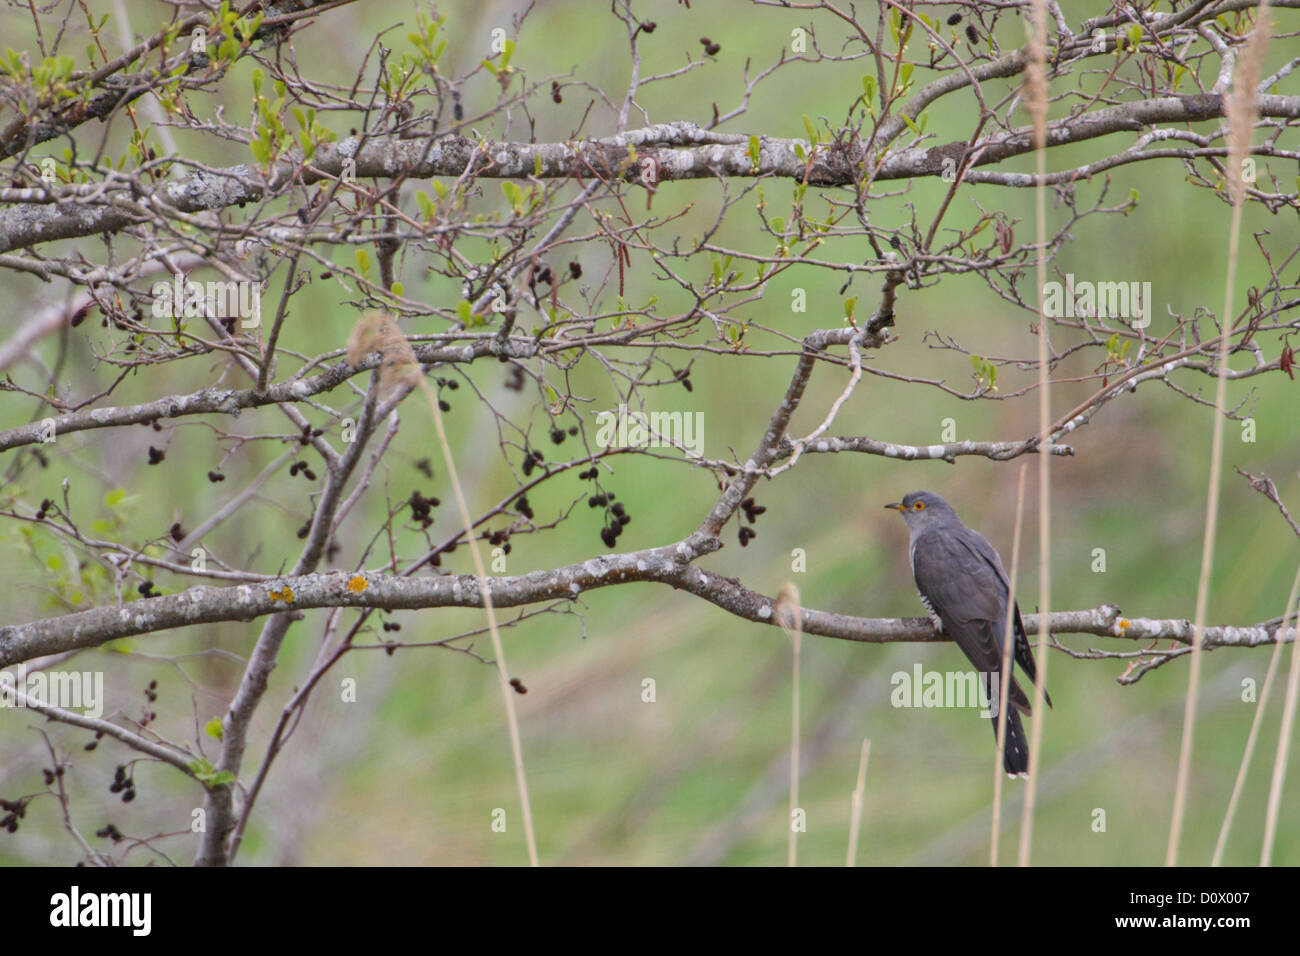 Common Cuckoo (Cuculus canorus), adult male, spring. Europe. - Stock Image